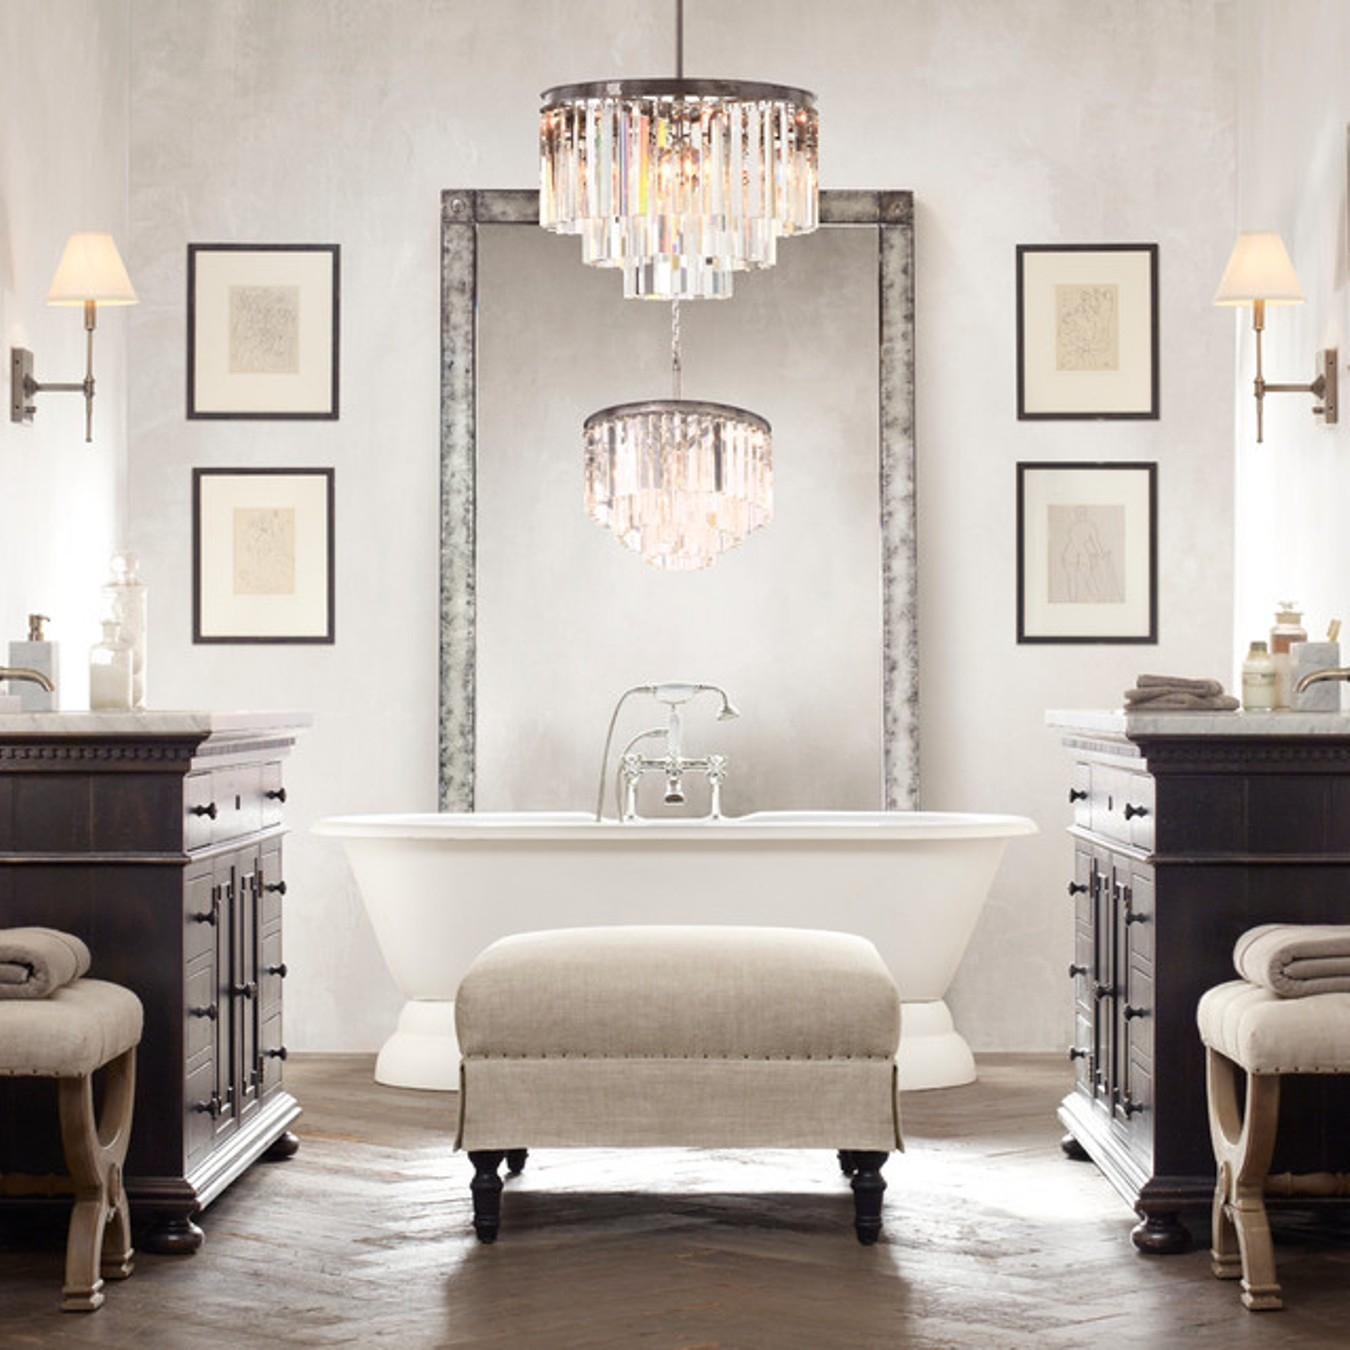 Brilliant Contemporary Bathroom Chandeliers Bedroom Amp Bathroom Throughout Bathroom Chandeliers (Image 13 of 15)